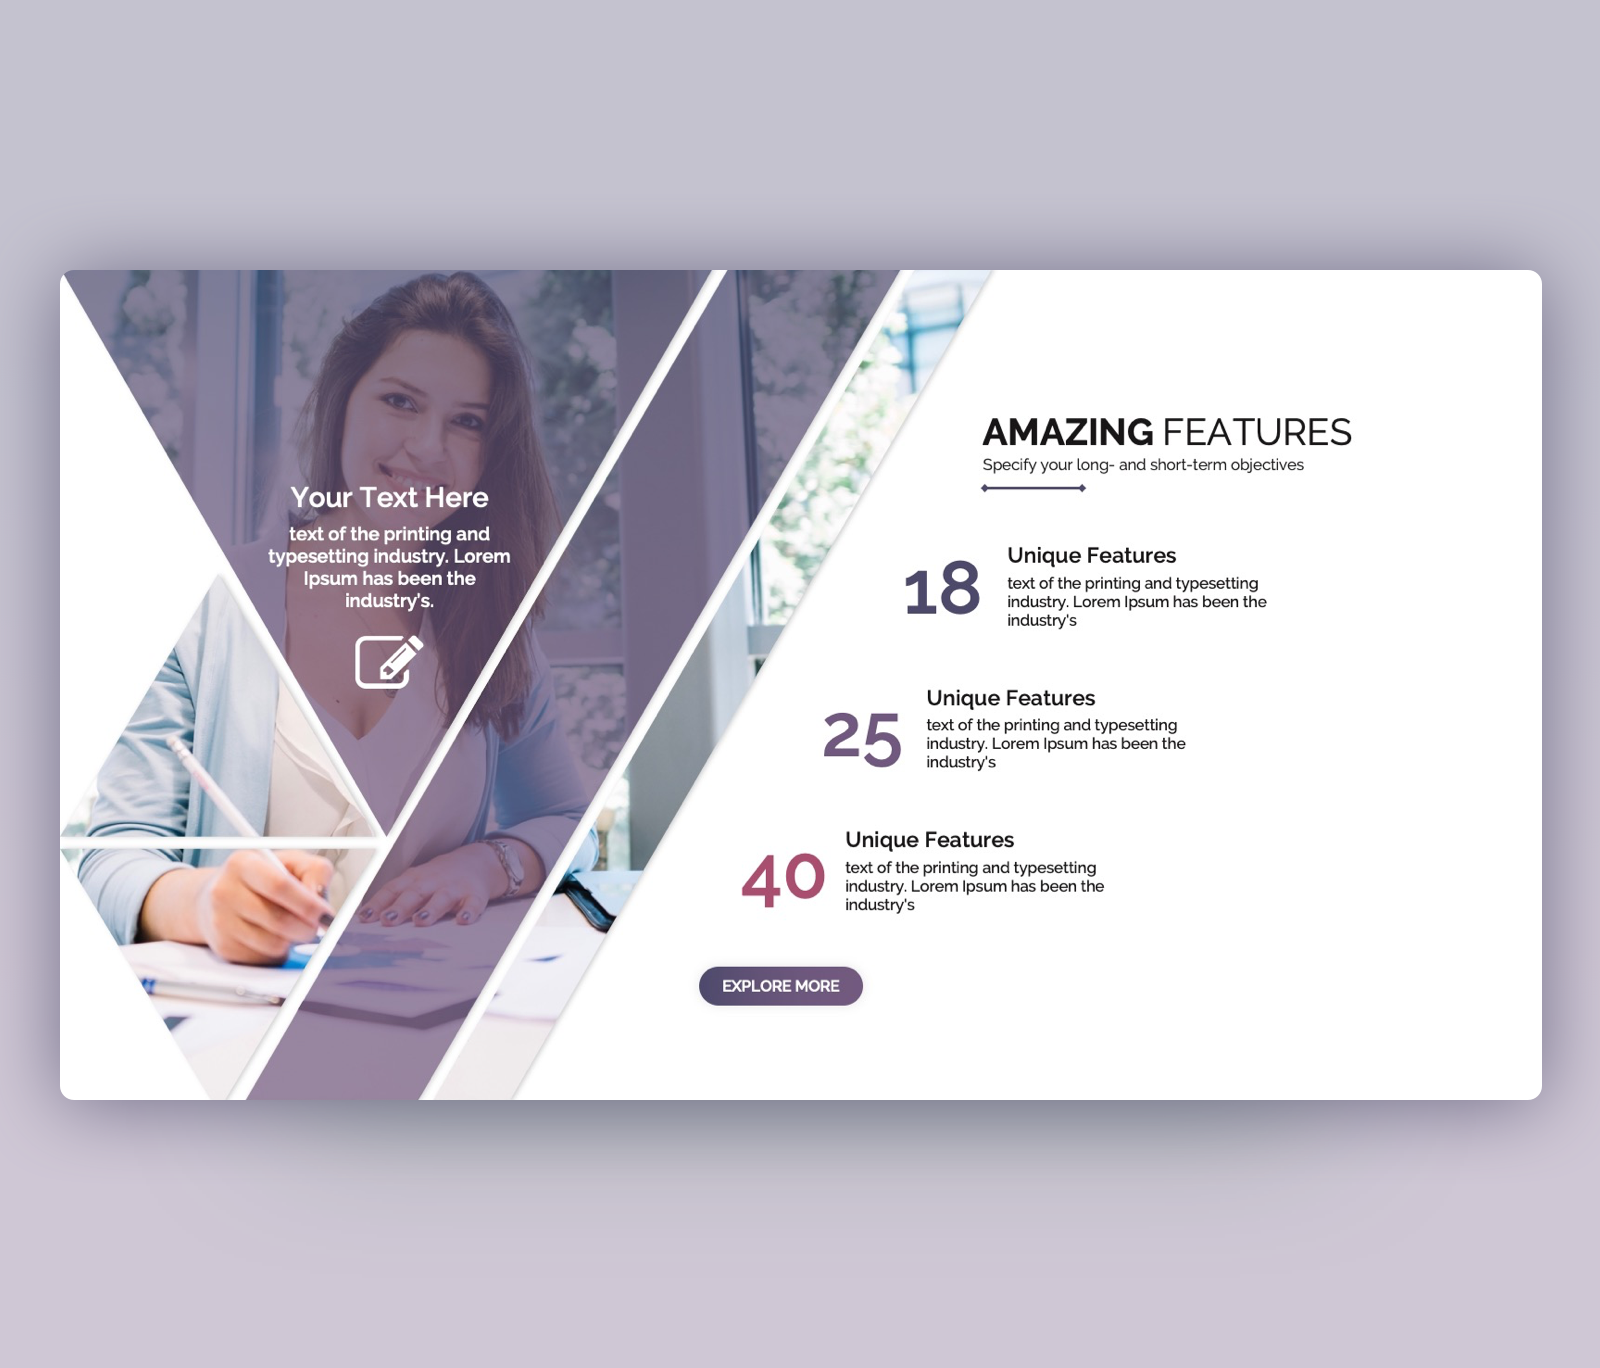 Amazing Features – Product Features PowerPoint Template